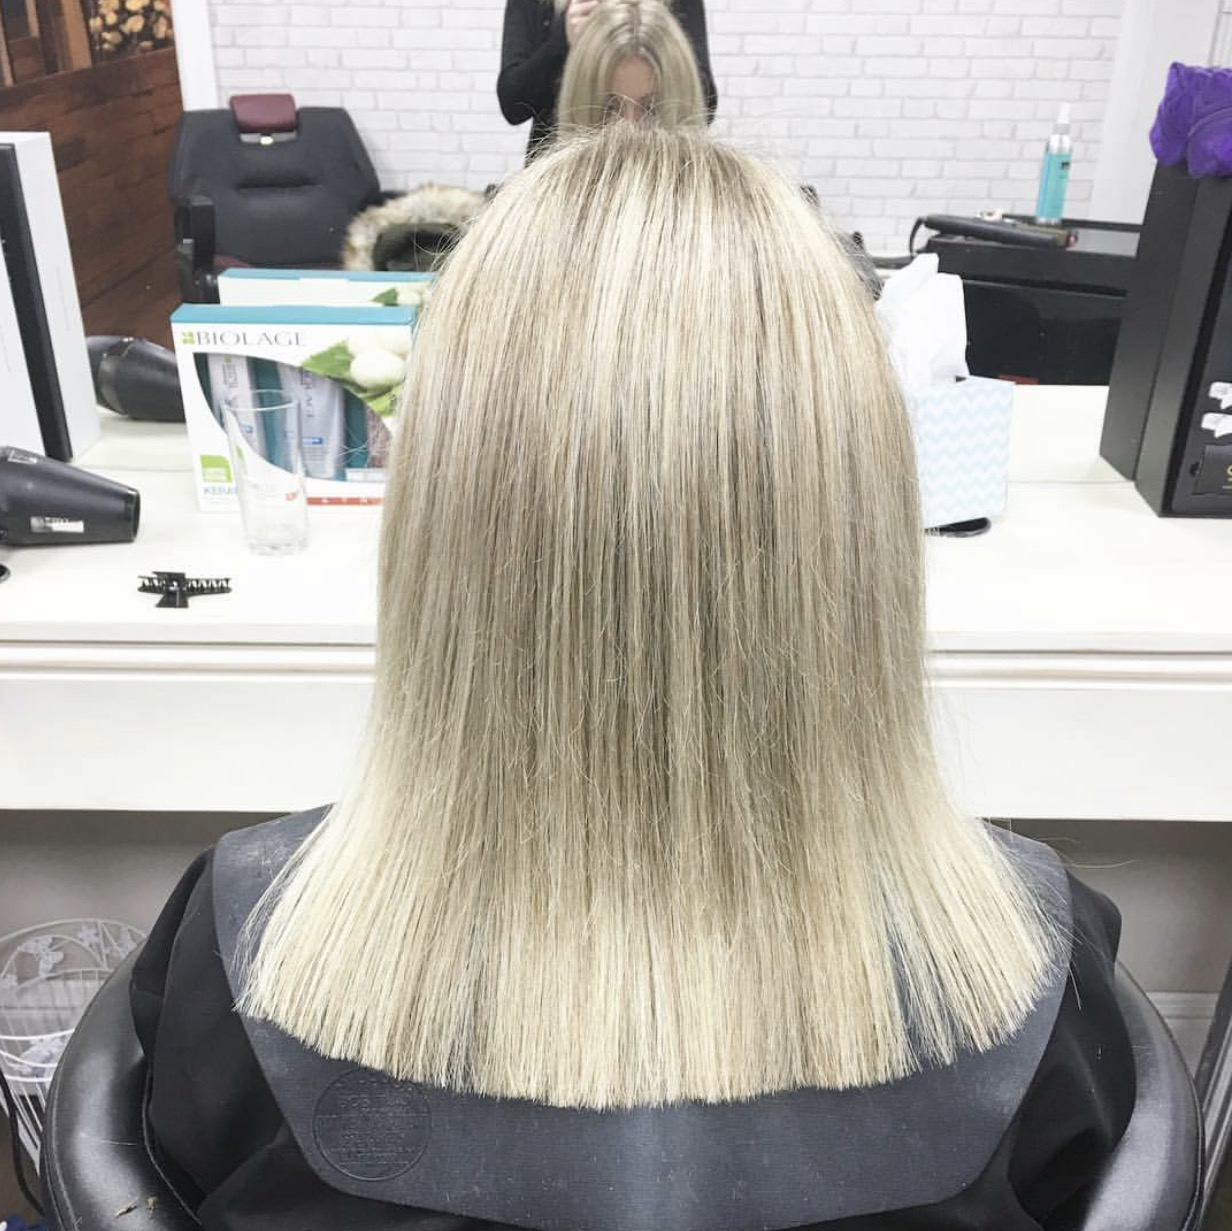 One Length - Straight Cut